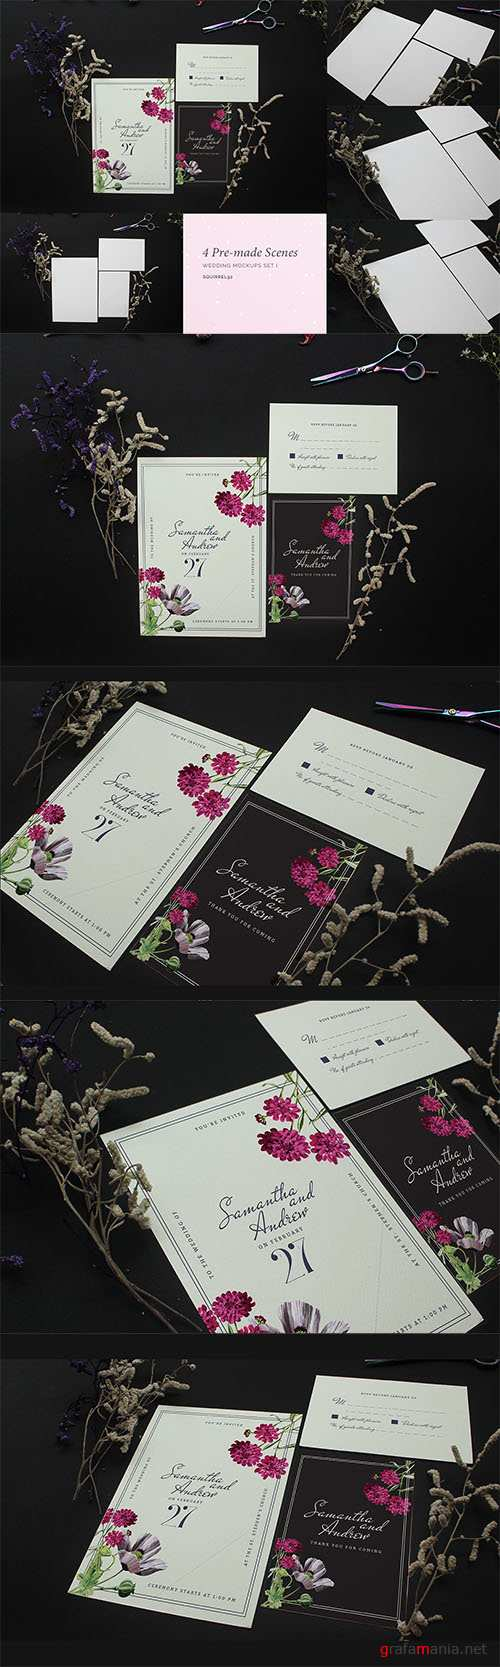 Wedding Invitation Mockup Set I PSD